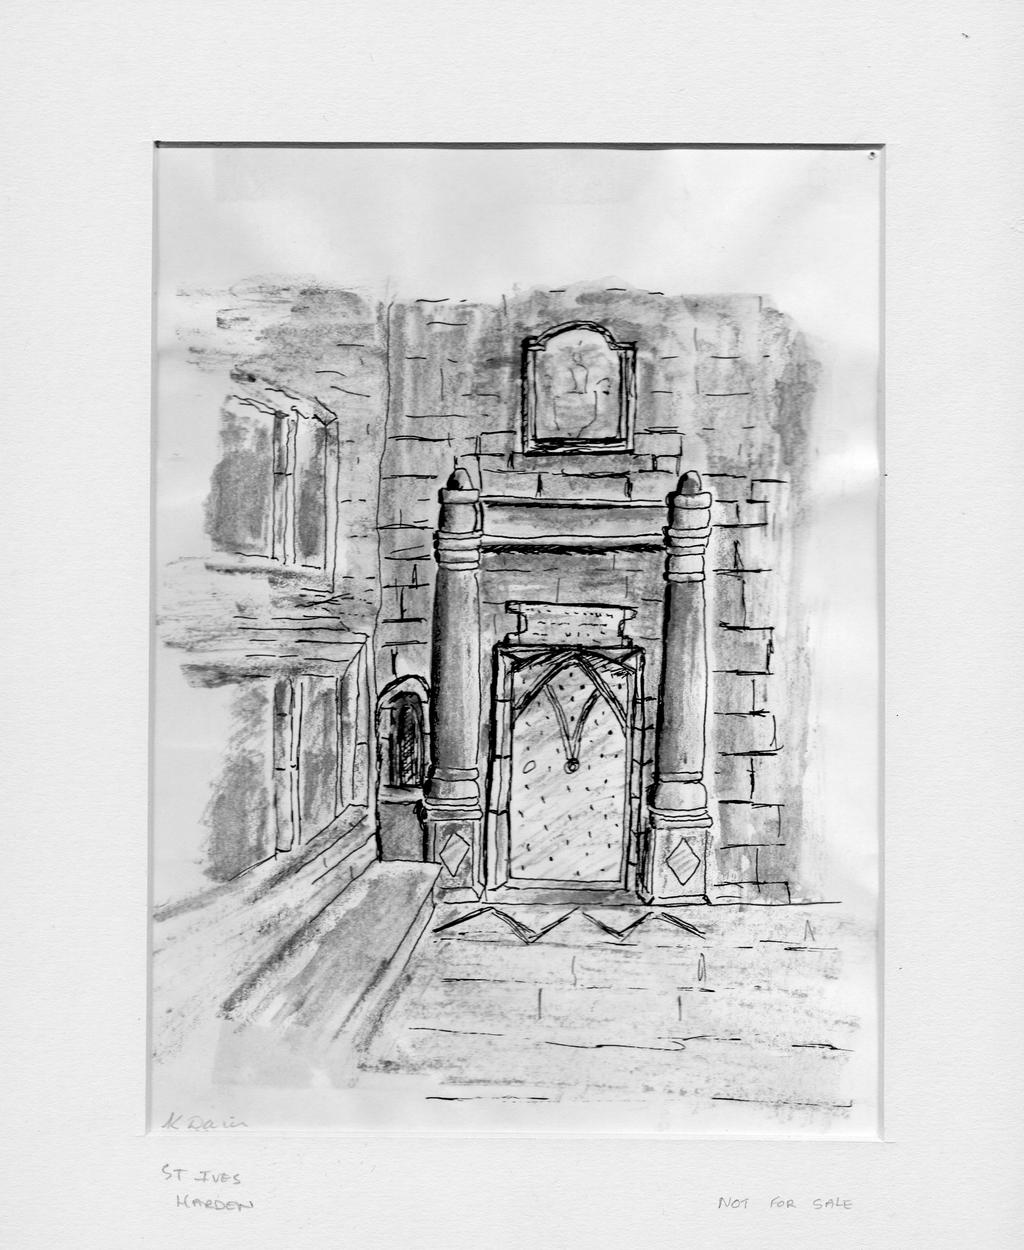 Door pencil drawing - Pencil Drawing Of Old St Ives Mansion Door By Santelder Door Pencil 12997378 Door Design